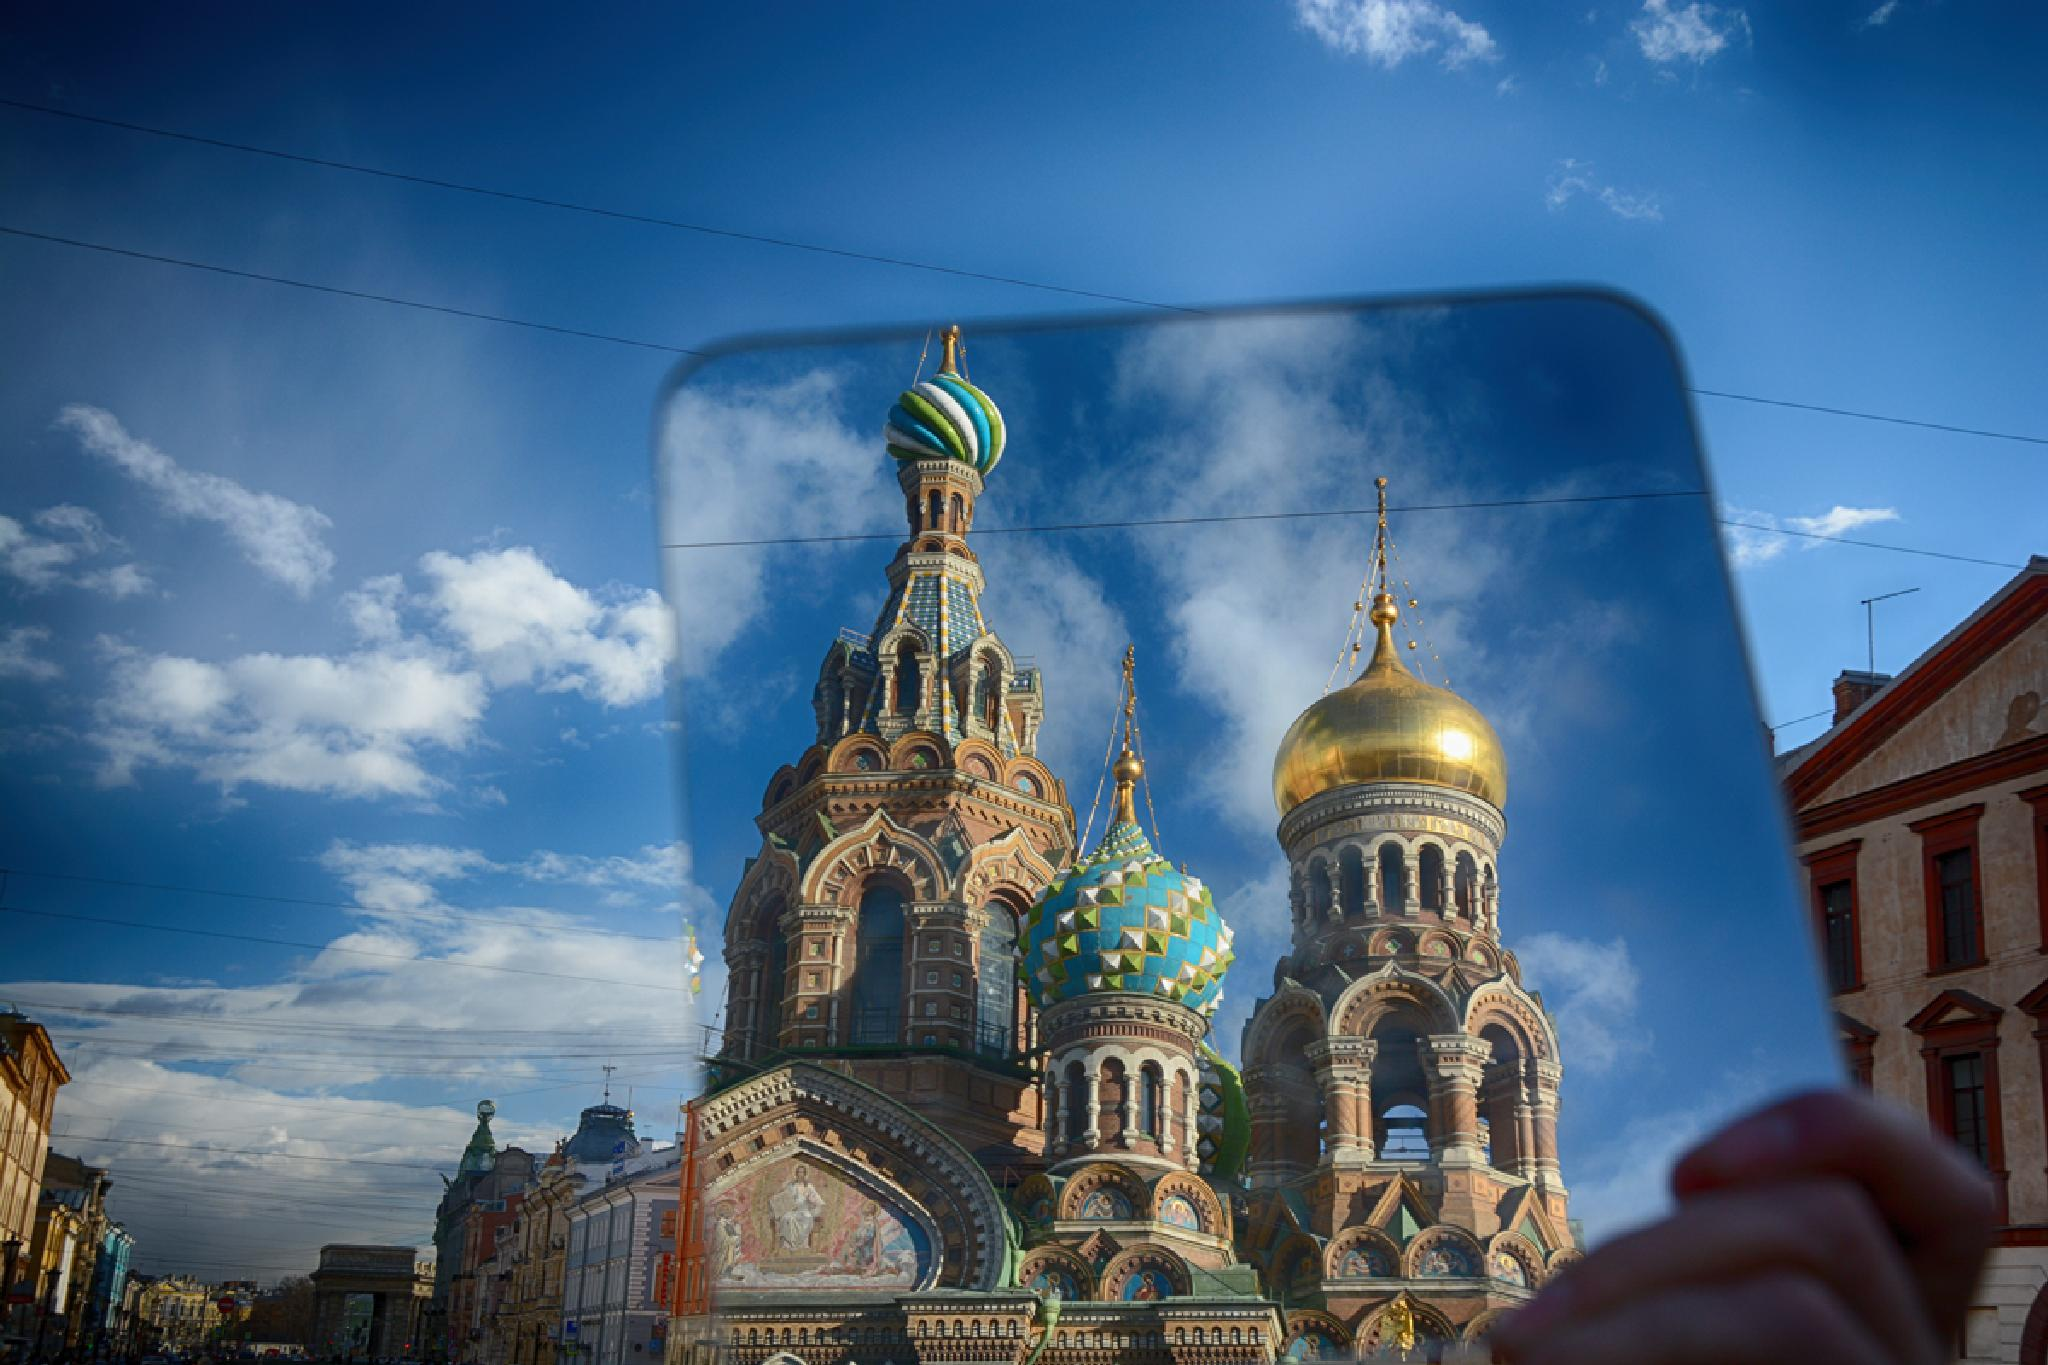 Reflection of The Church of the Savior on Spilled Blood from hand mirror by Abdurrahman Aksoy